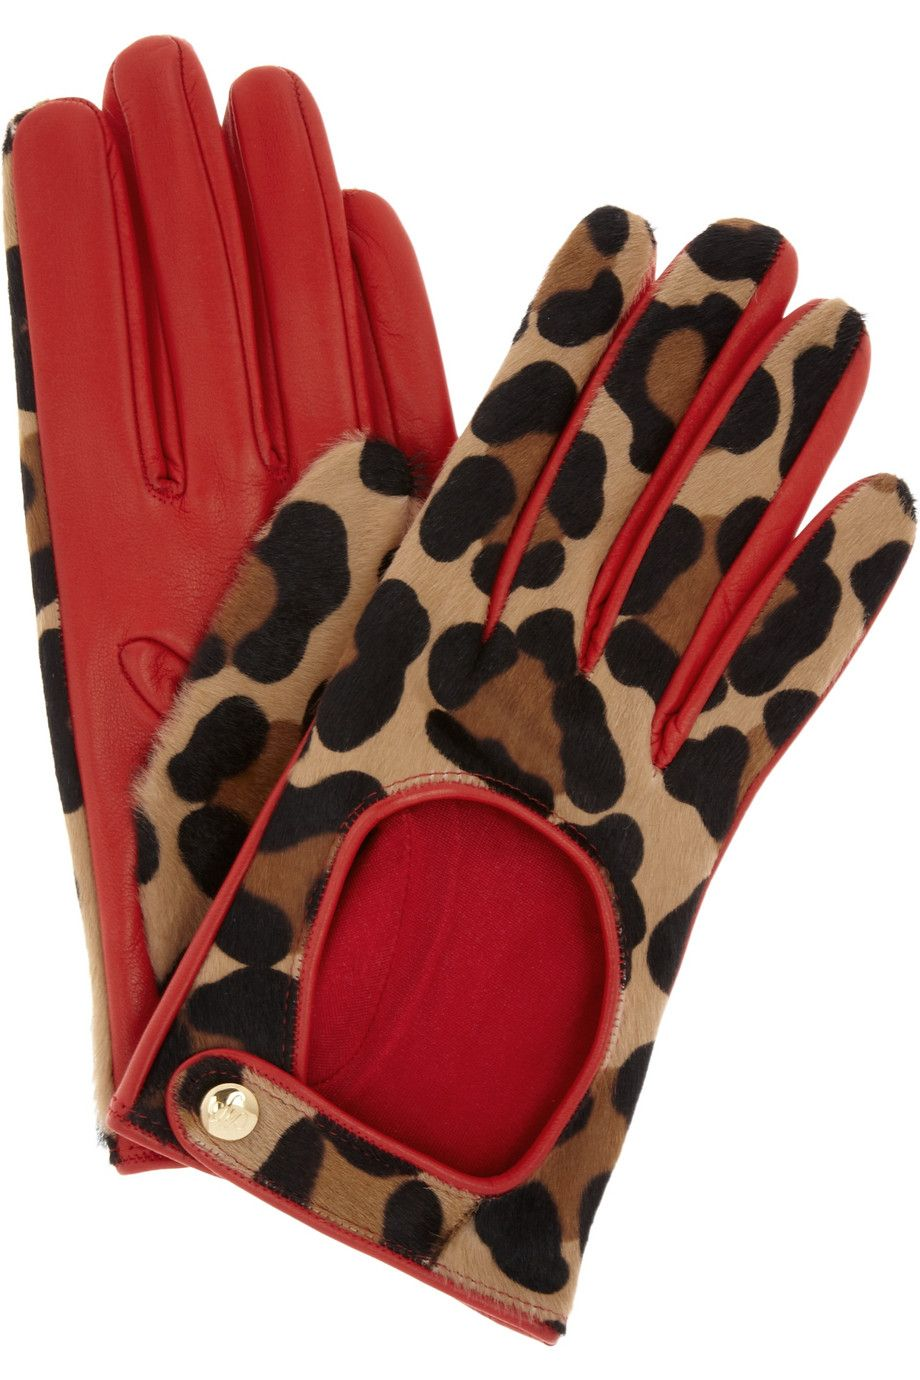 Tiger leather driving gloves - Agent Provocateur Leopard Print Calf Hair Driving Gloves